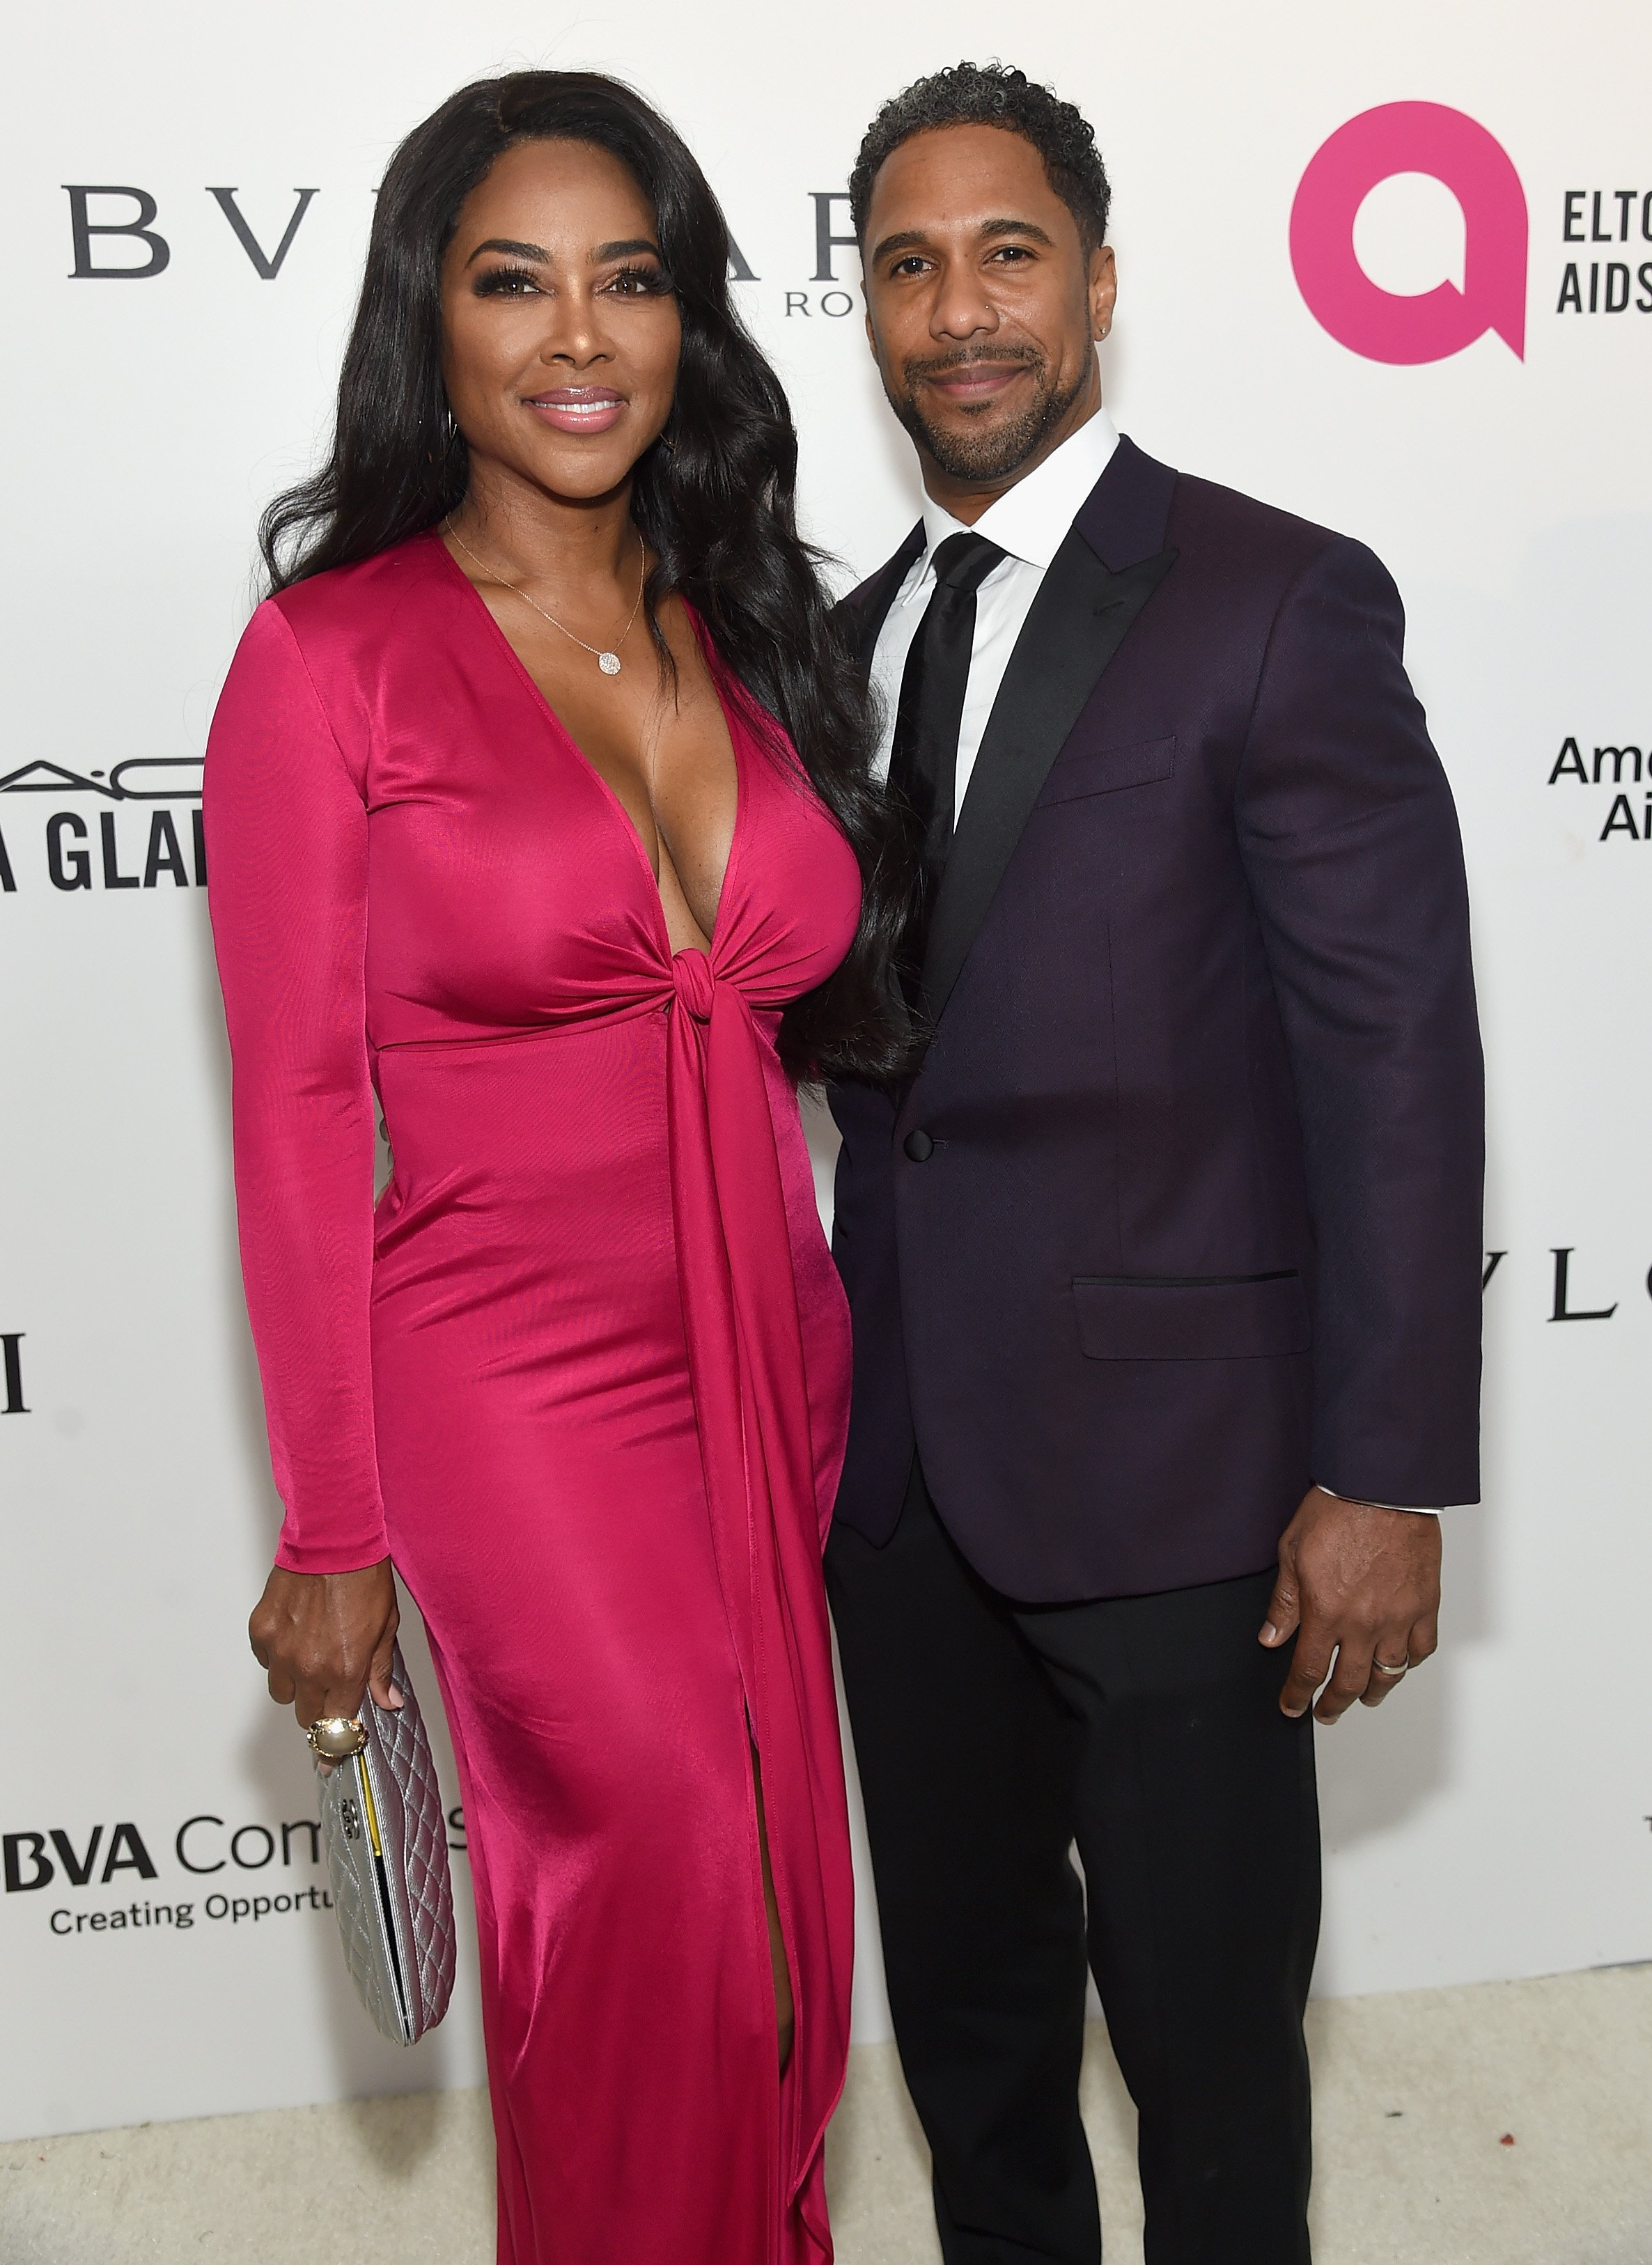 Kenya Moore and Marc Daly attend the 26th annual Elton John AIDS Foundation's Academy Awards Viewing Party at The City of West Hollywood Park on March 4, 2018| Photo: Getty Images